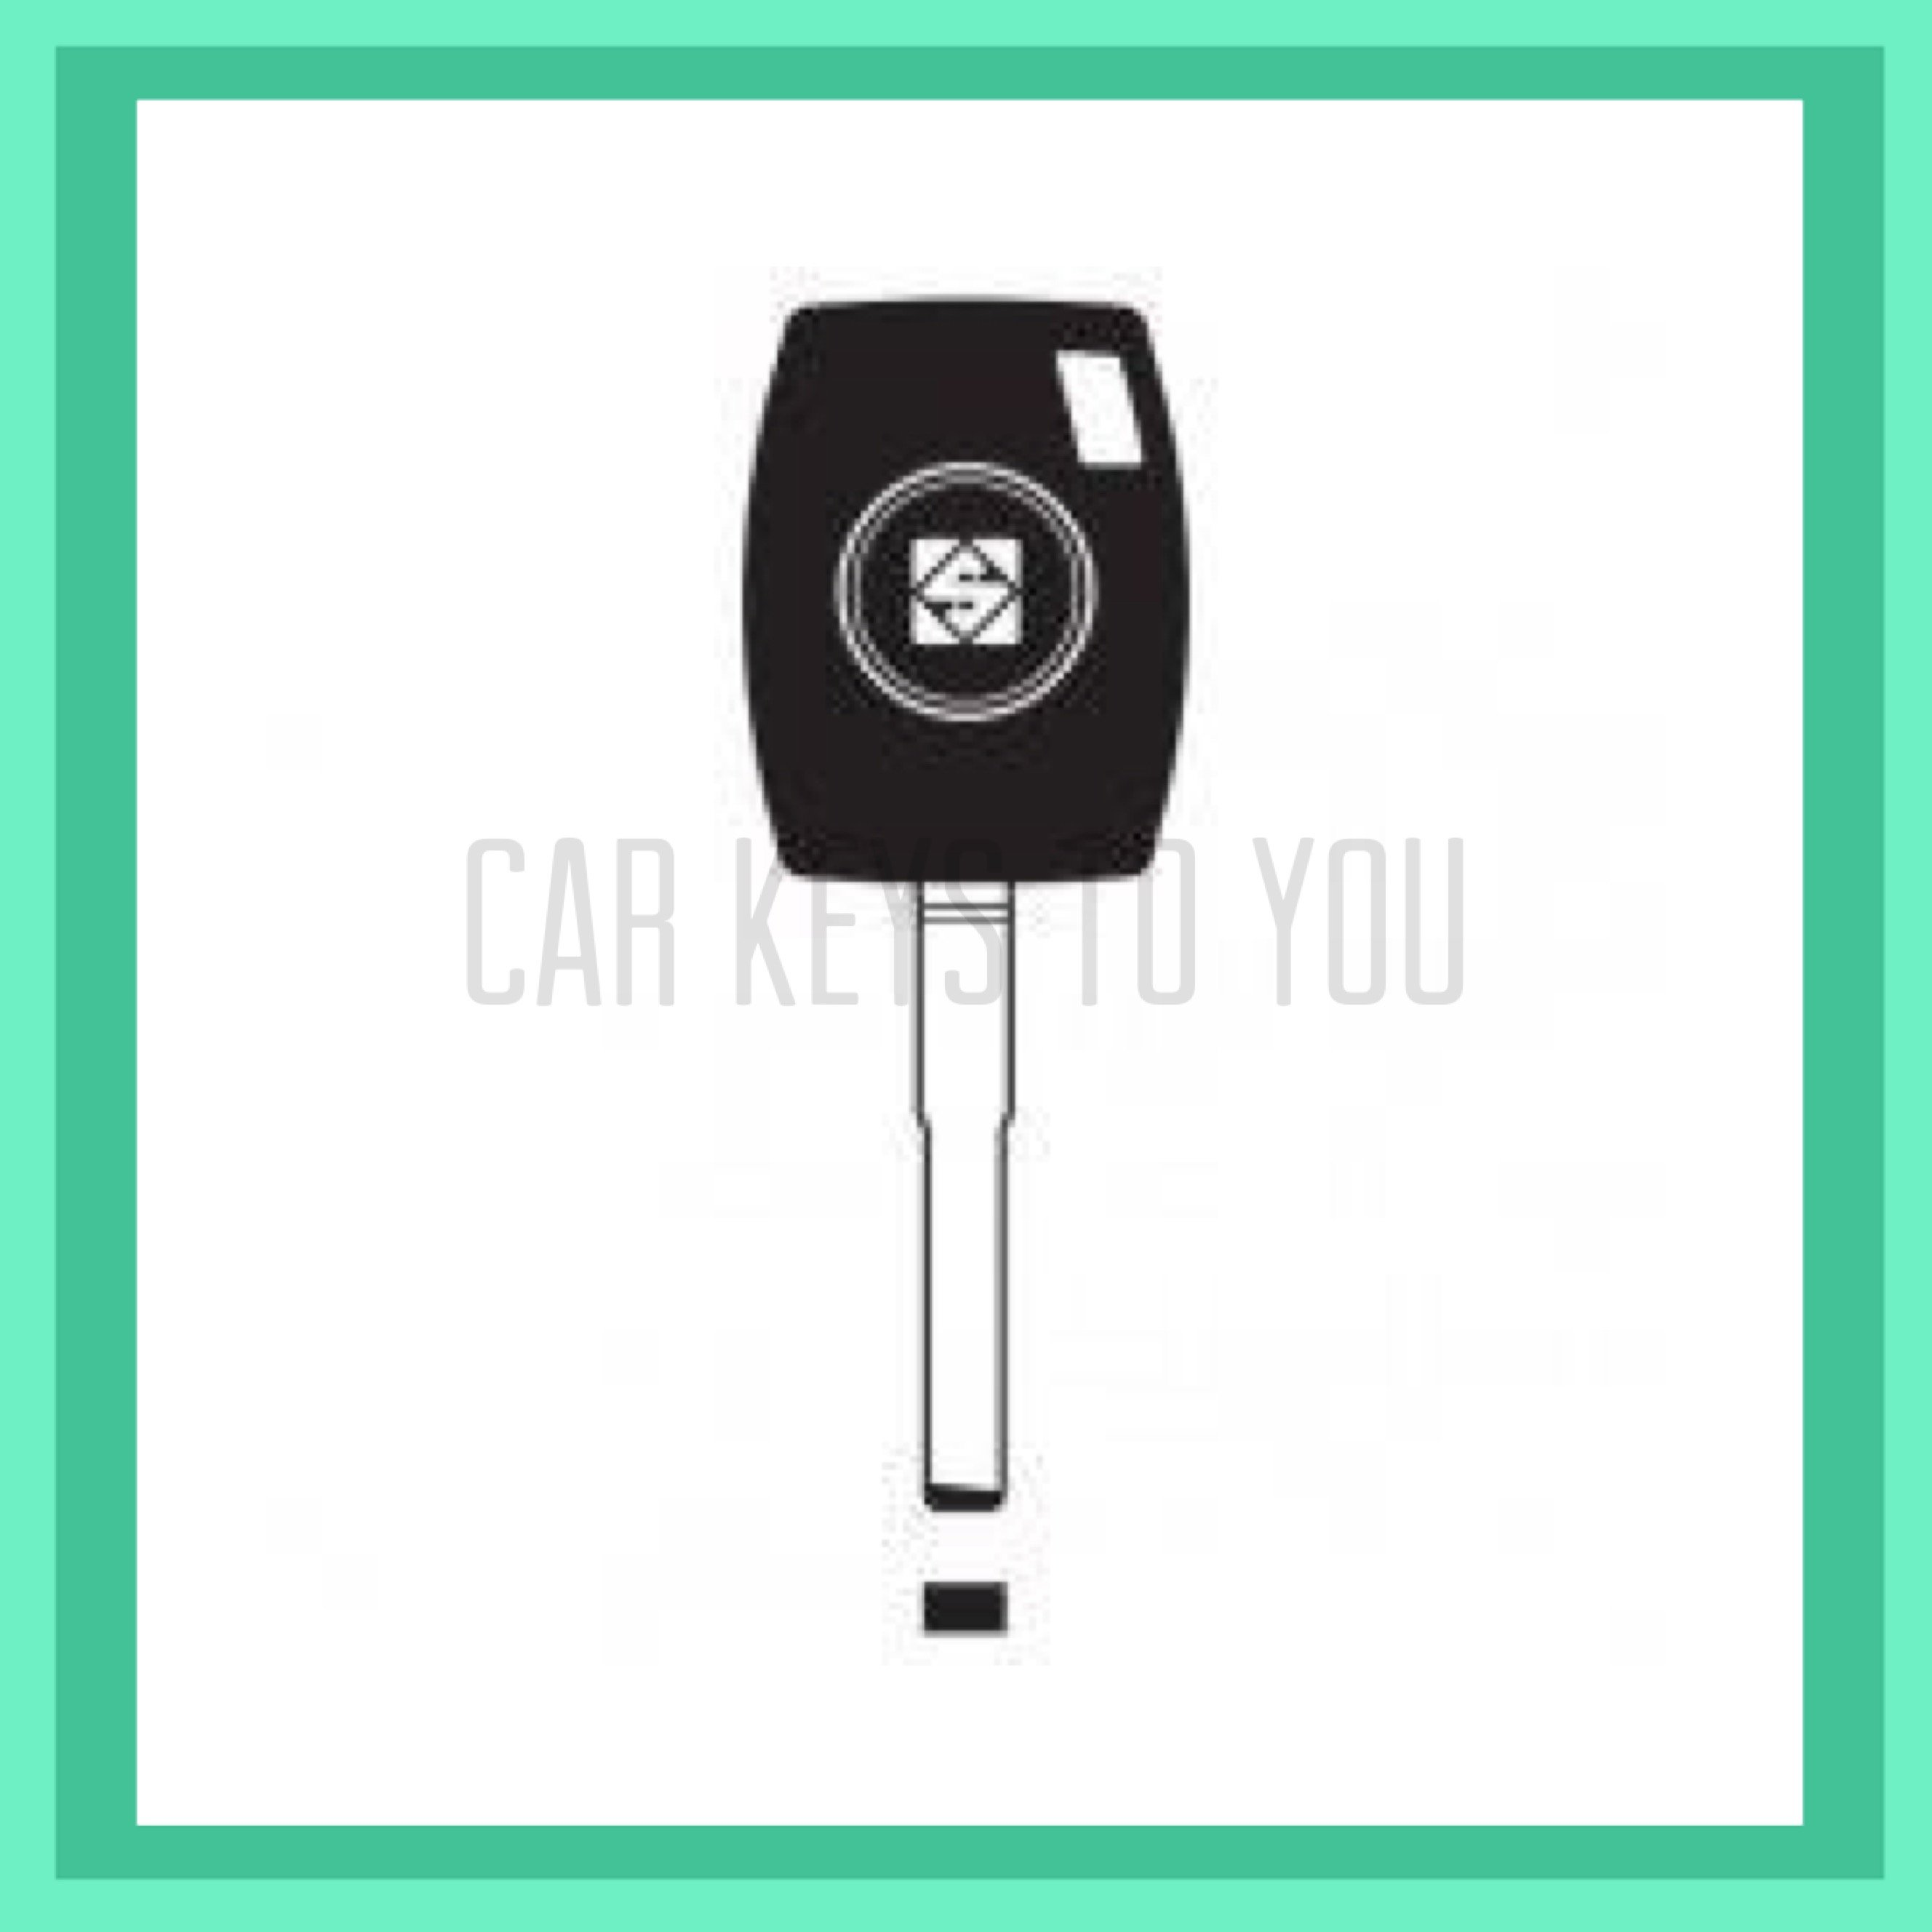 Mazda BT50 Car Key and Remot, Suit B32P/Q 2011 - 2015